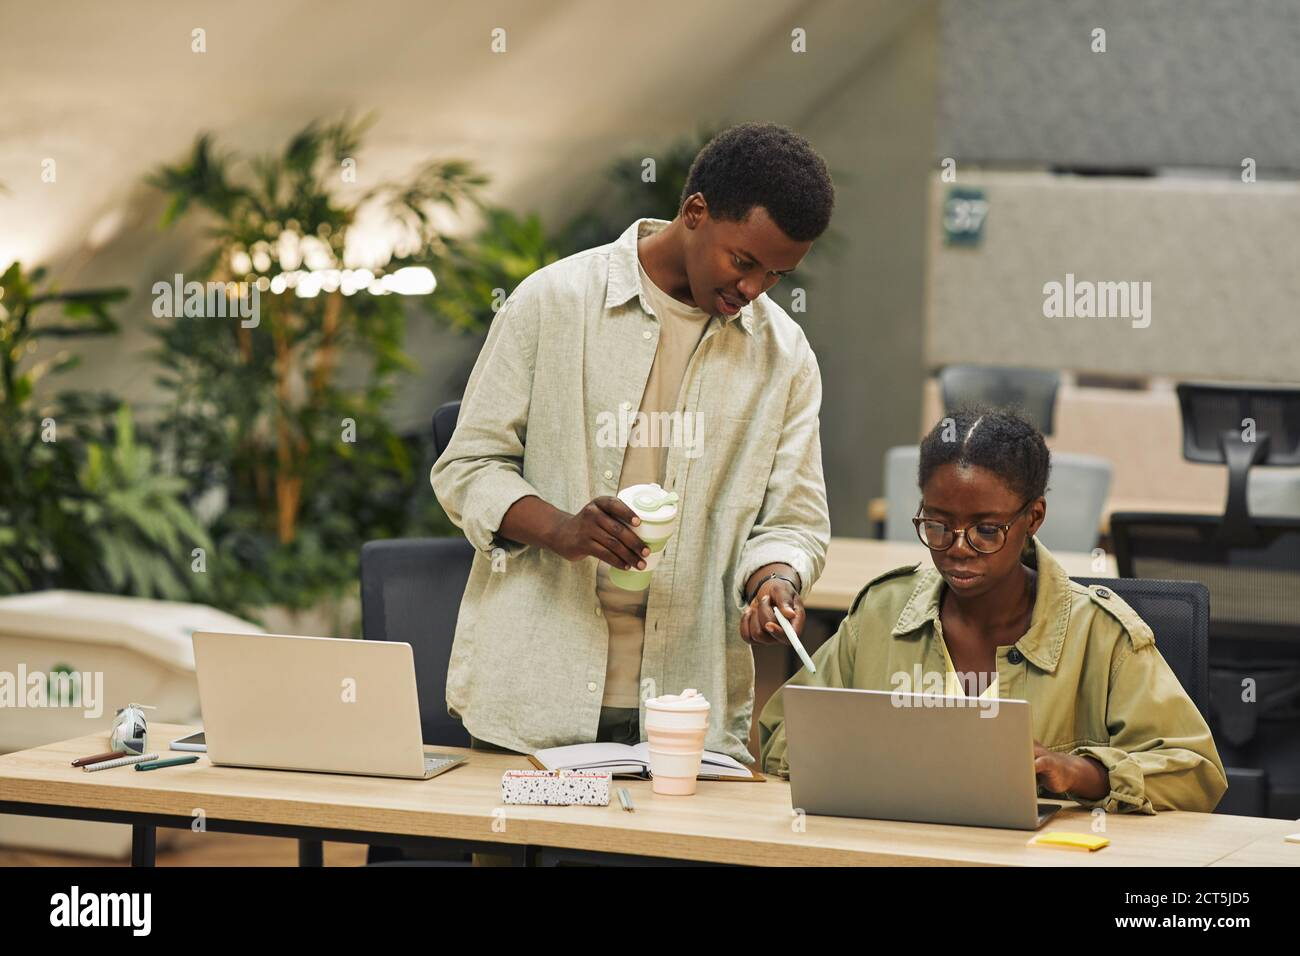 Portrait of two African-American people working in modern open space office, focus on young man instructing colleague and pointing at laptop screen , copy space Stock Photo